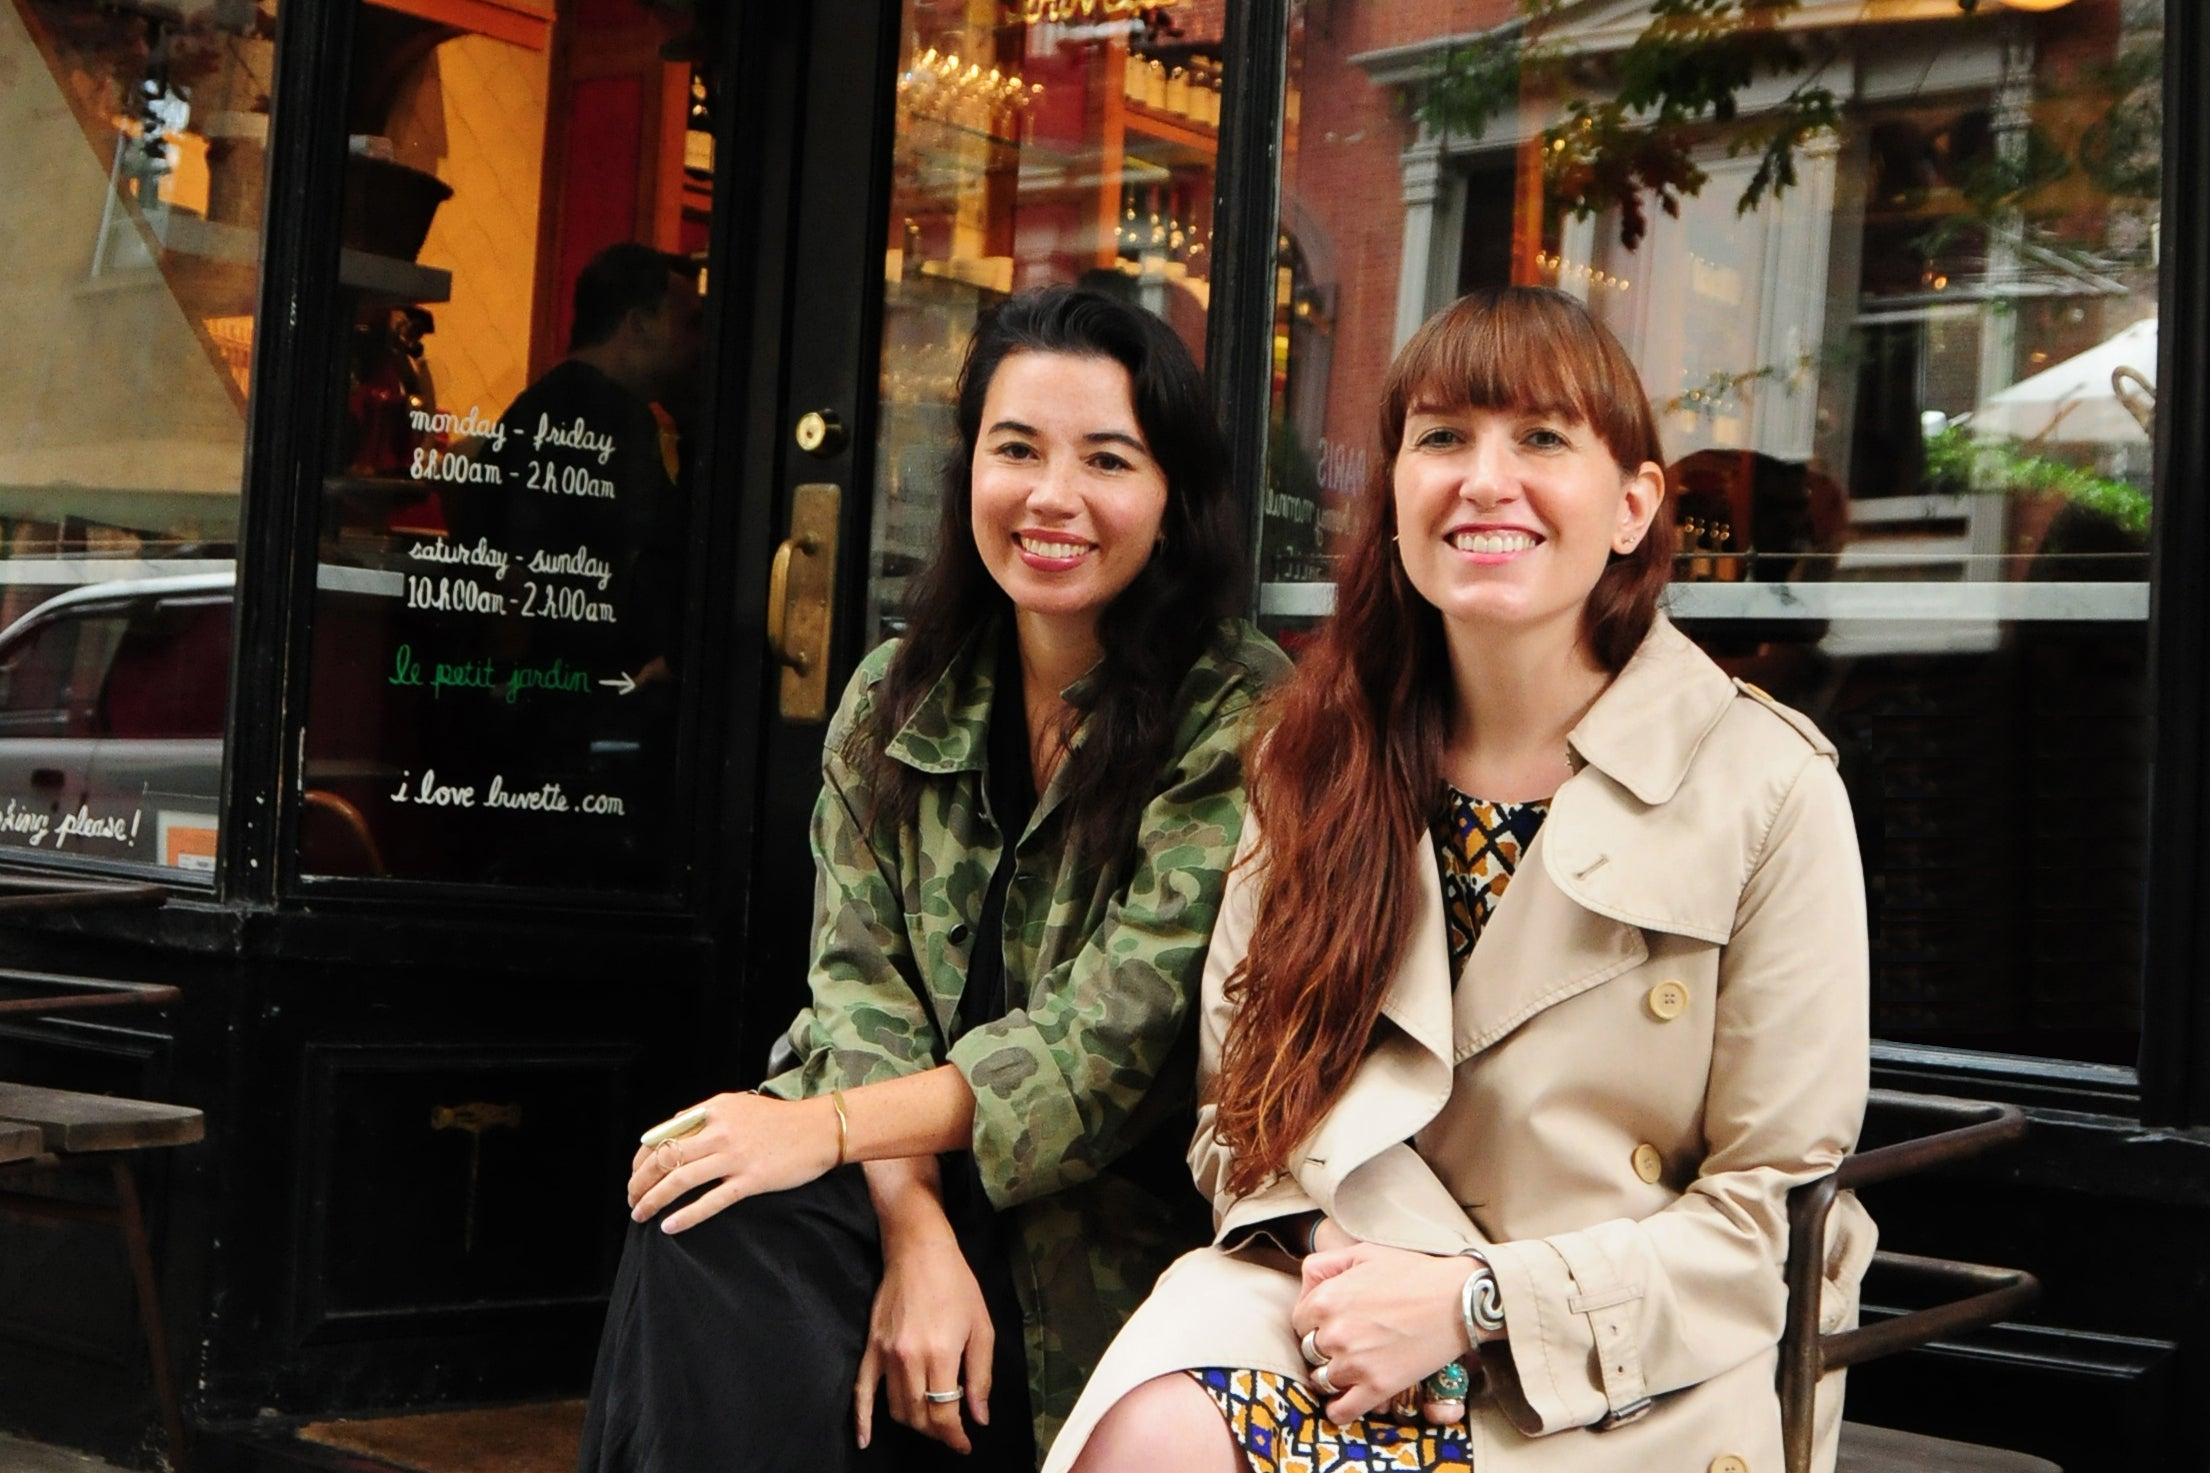 Michele Outland and Fiorella Valdesolo, co-founders, Gather Journal